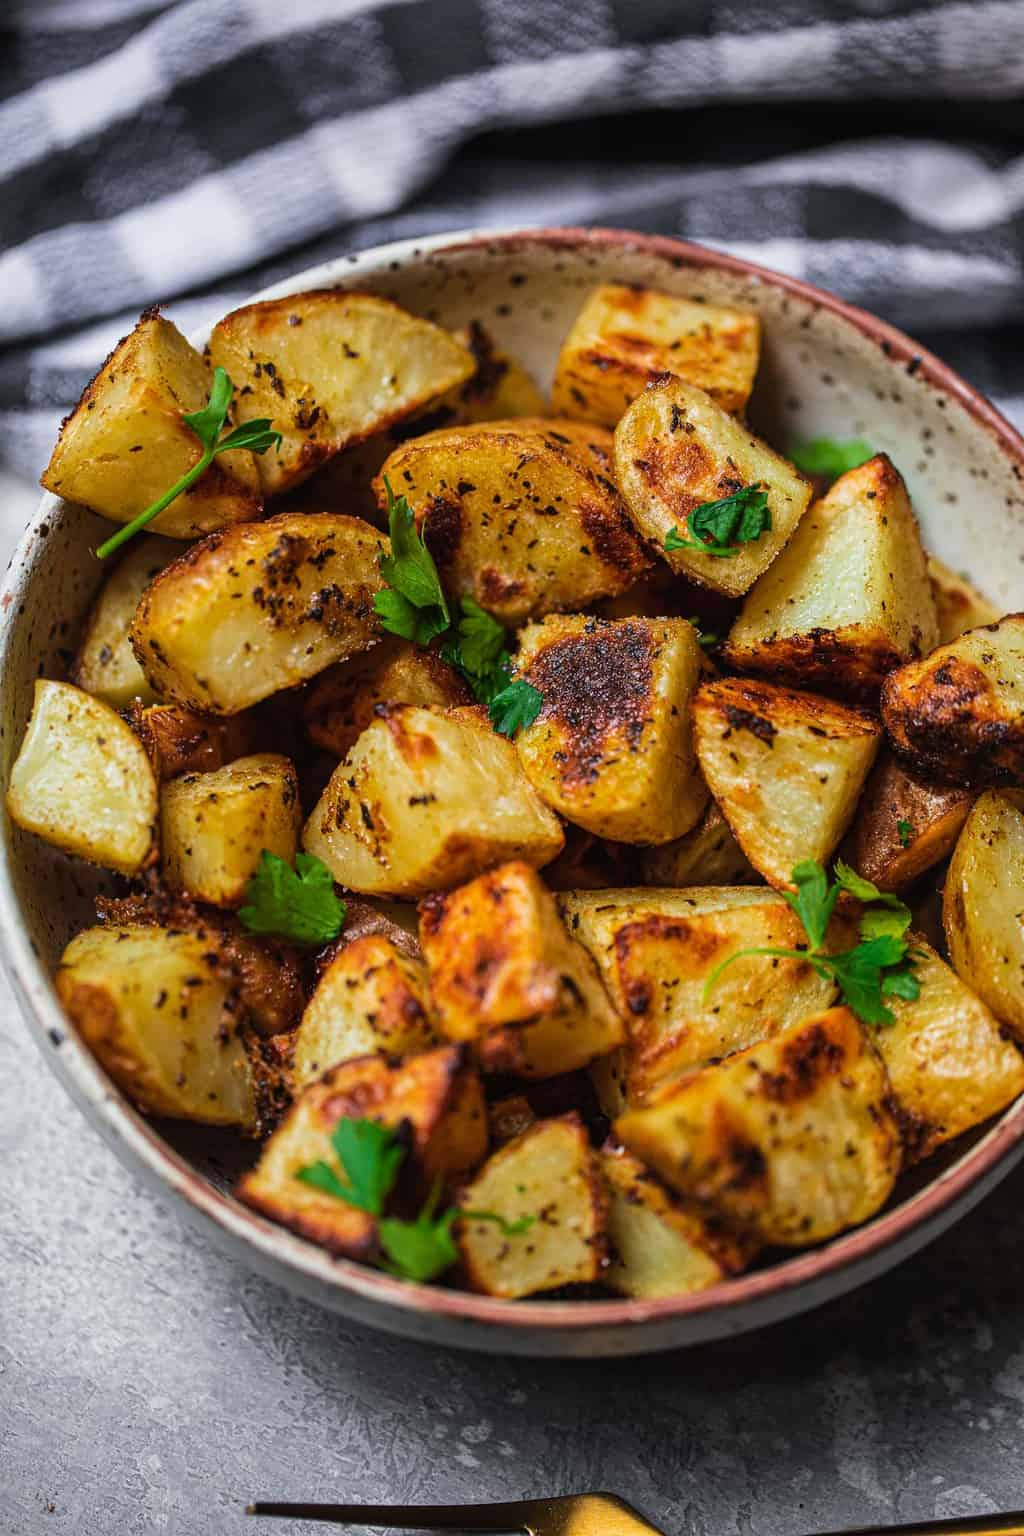 Bowl of vegan roasted potatoes